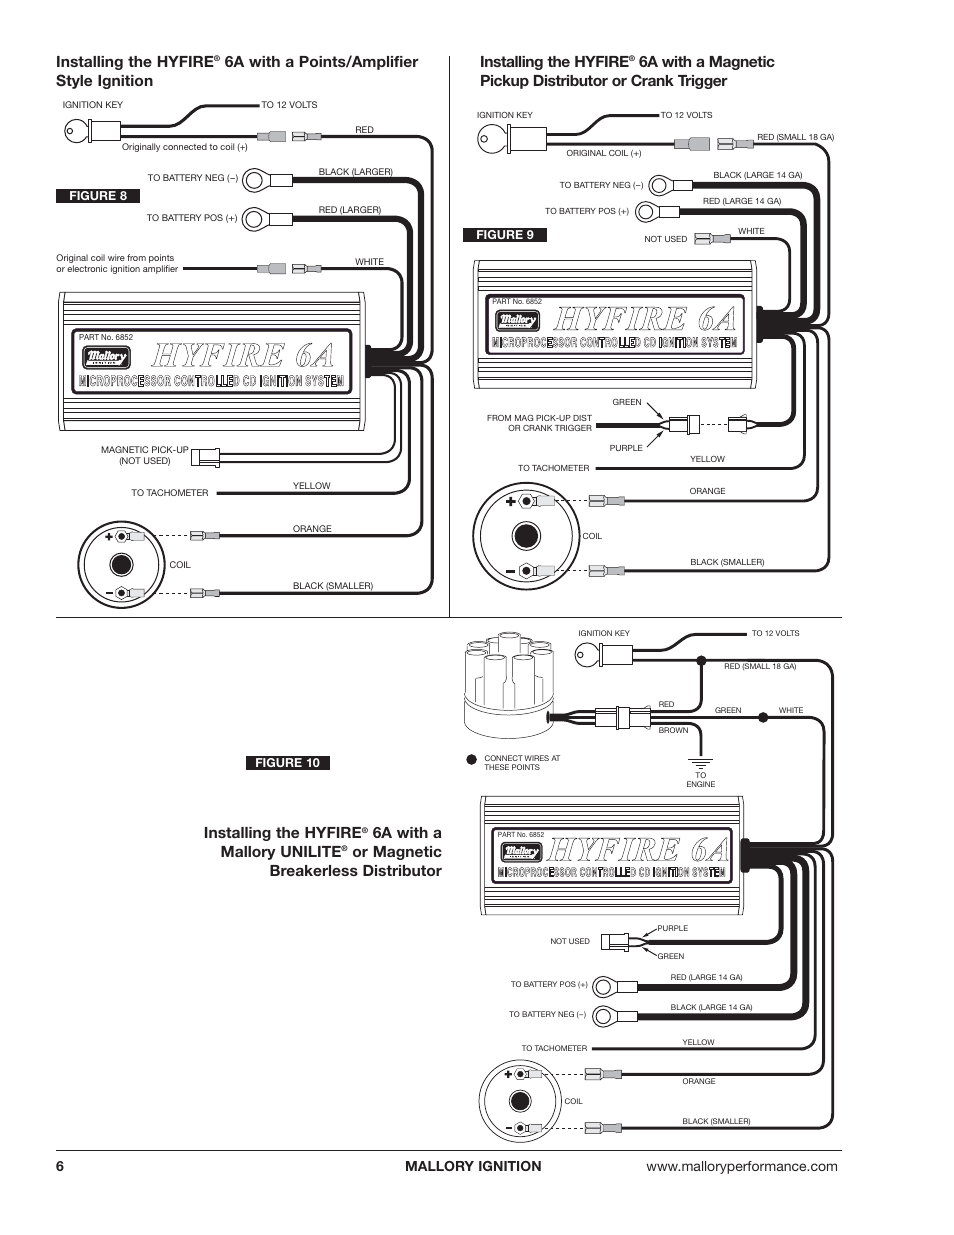 Wiring Diagram Besides Mallory Ignition Wiring Diagram Also Tachometer